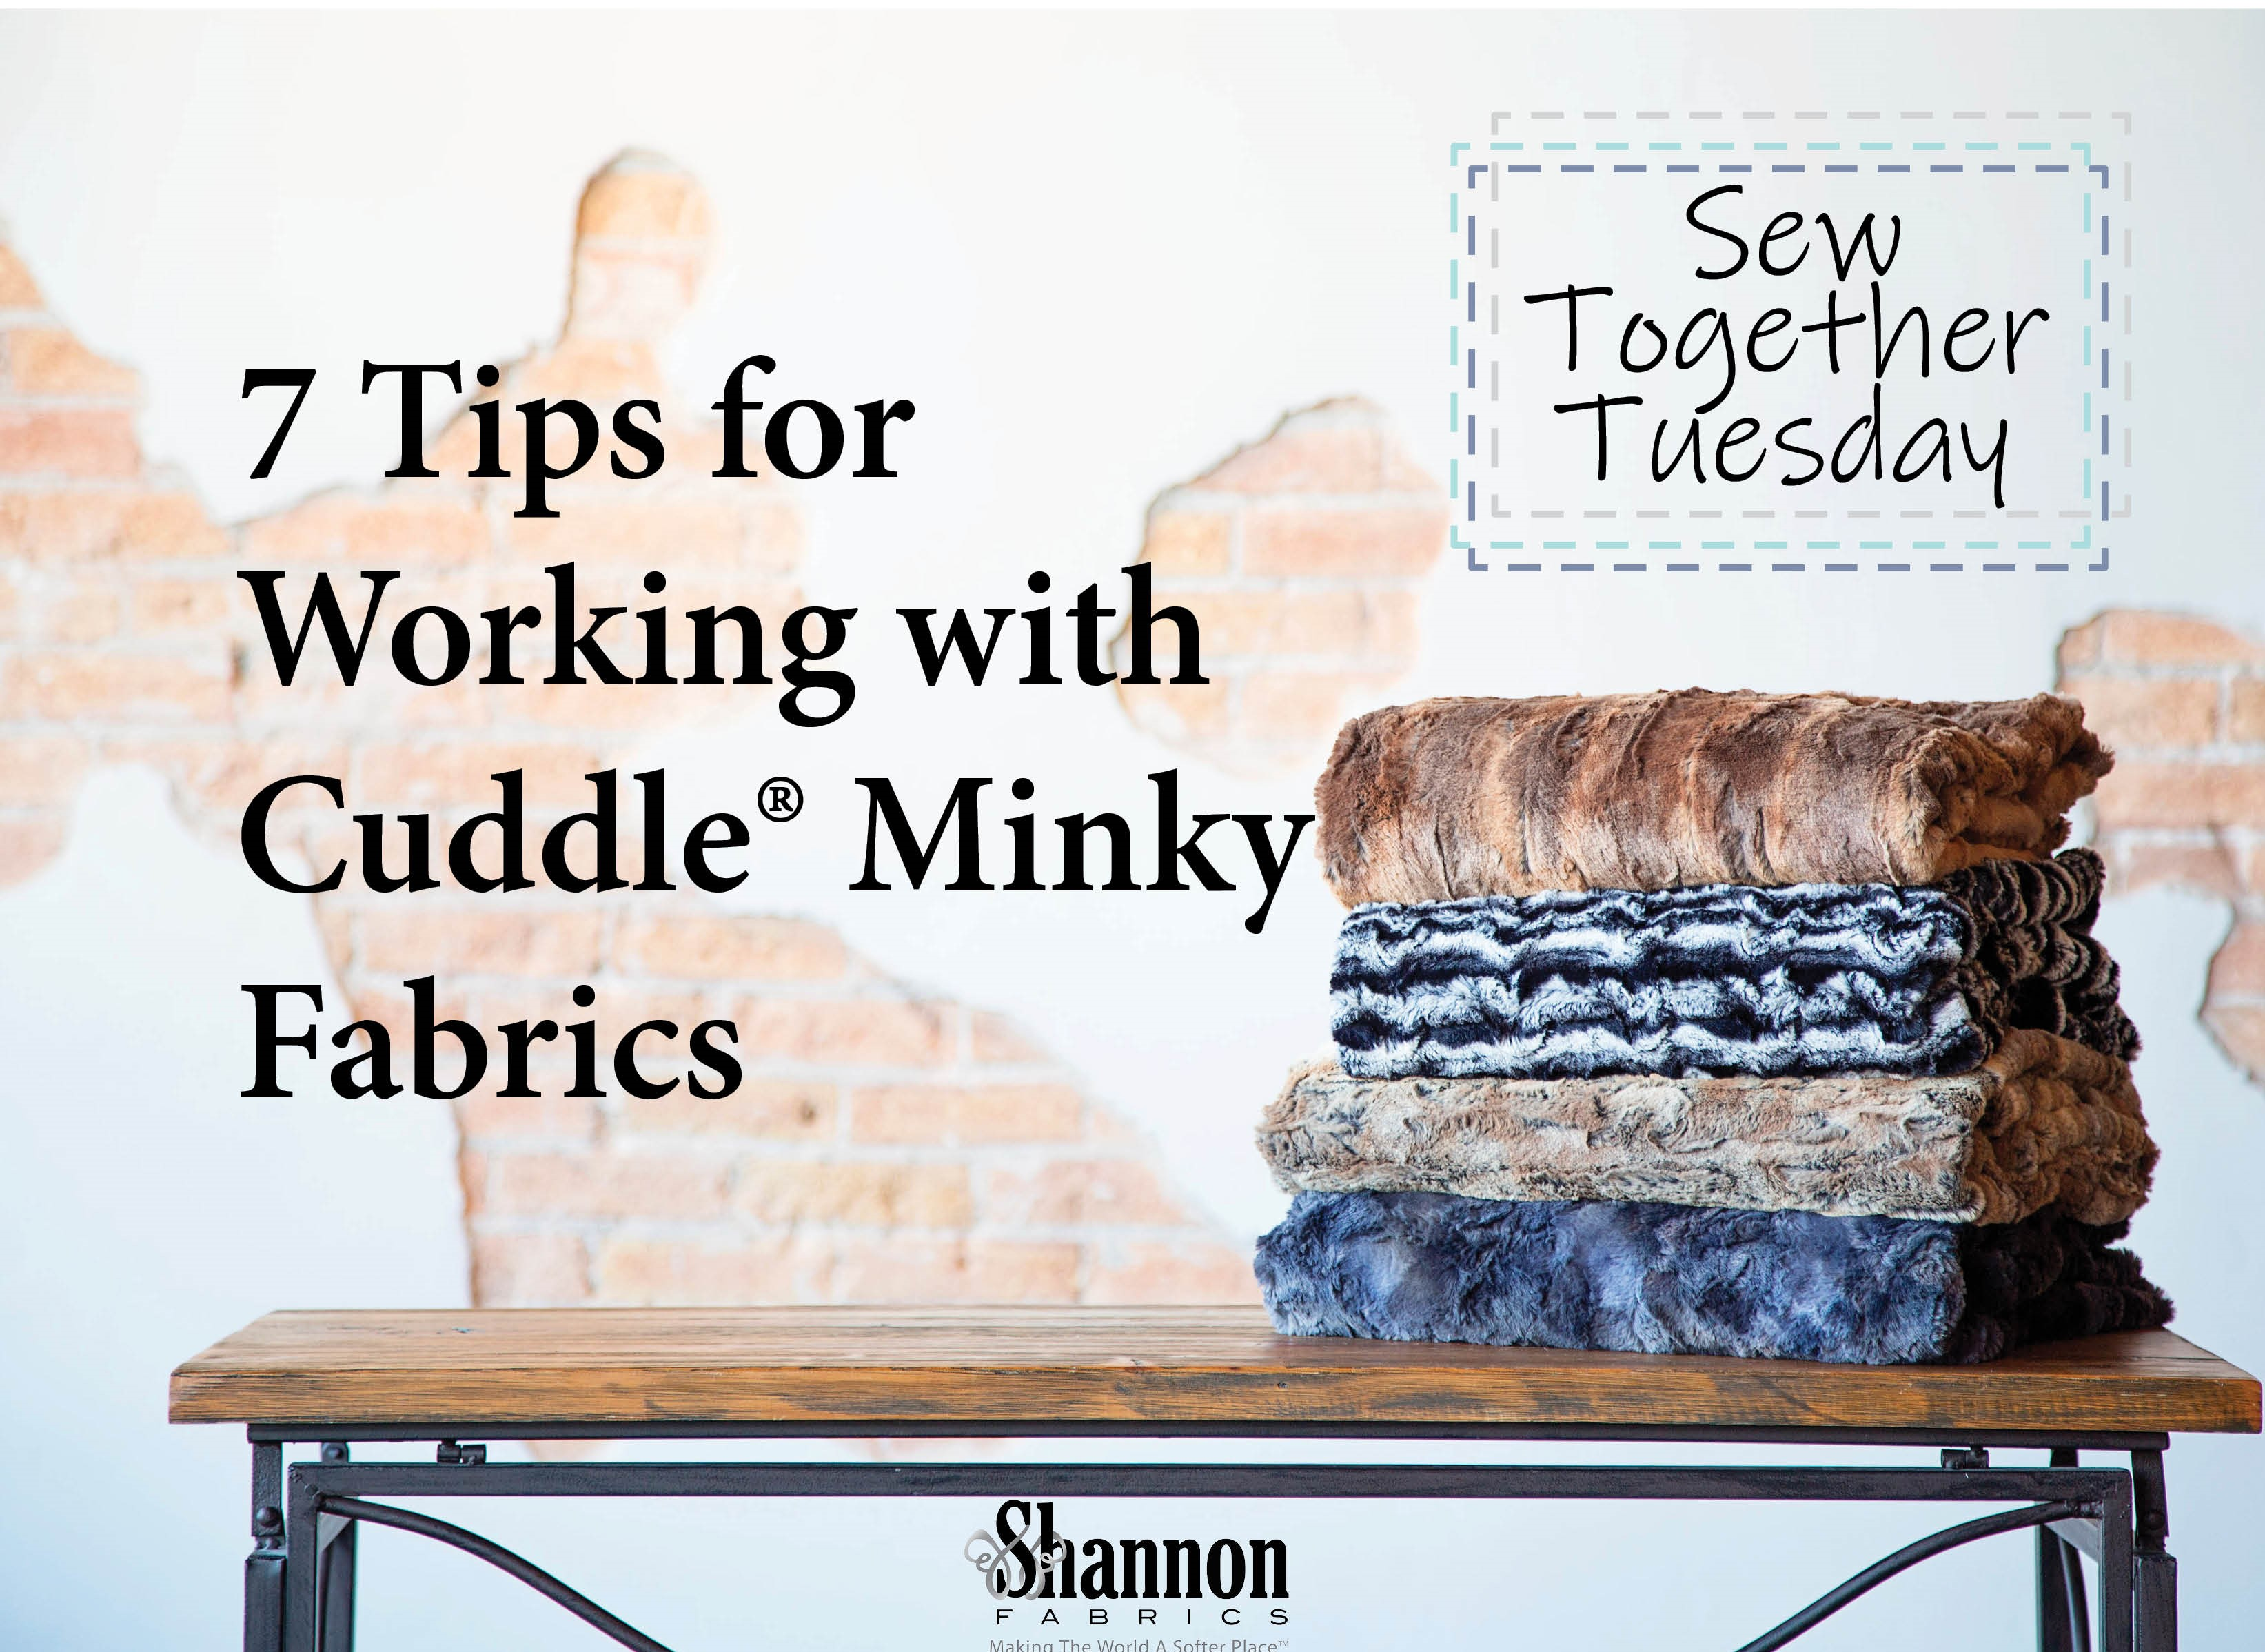 7 Tips for Sewing with Cuddle Minky